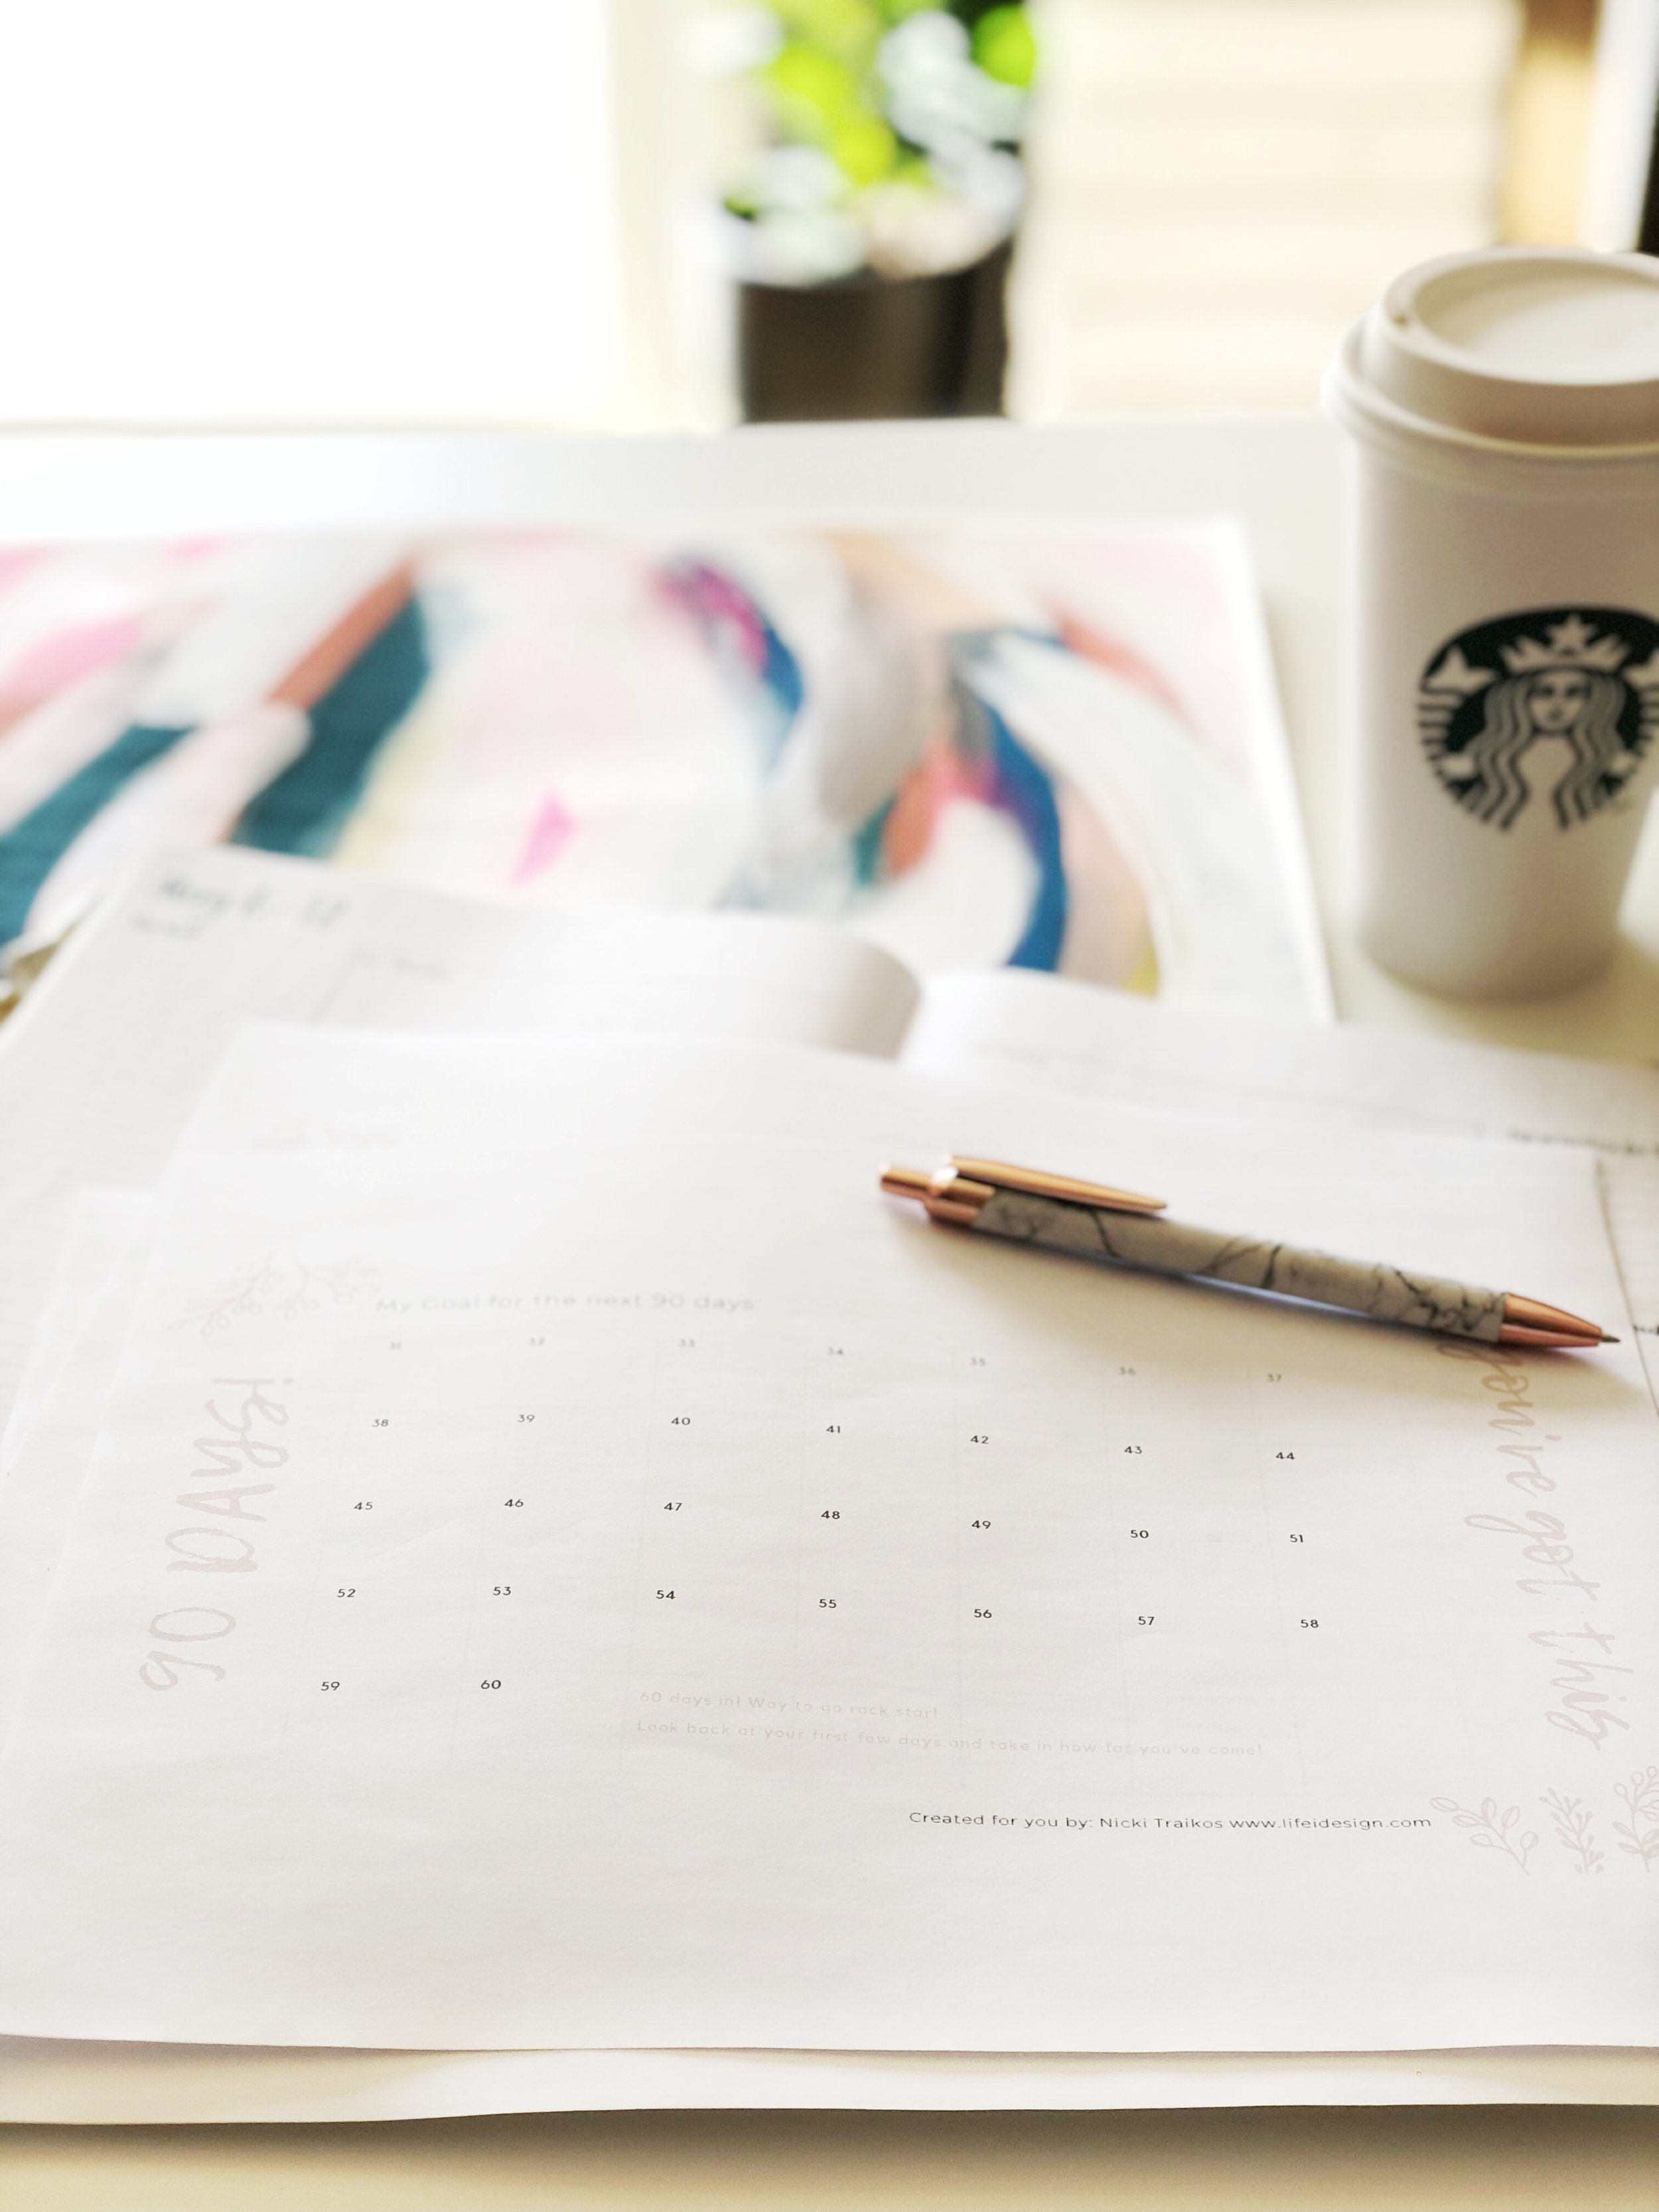 Sitting down to work in the mornings with my daily planner and a latte. I review my to-do list and get to work!